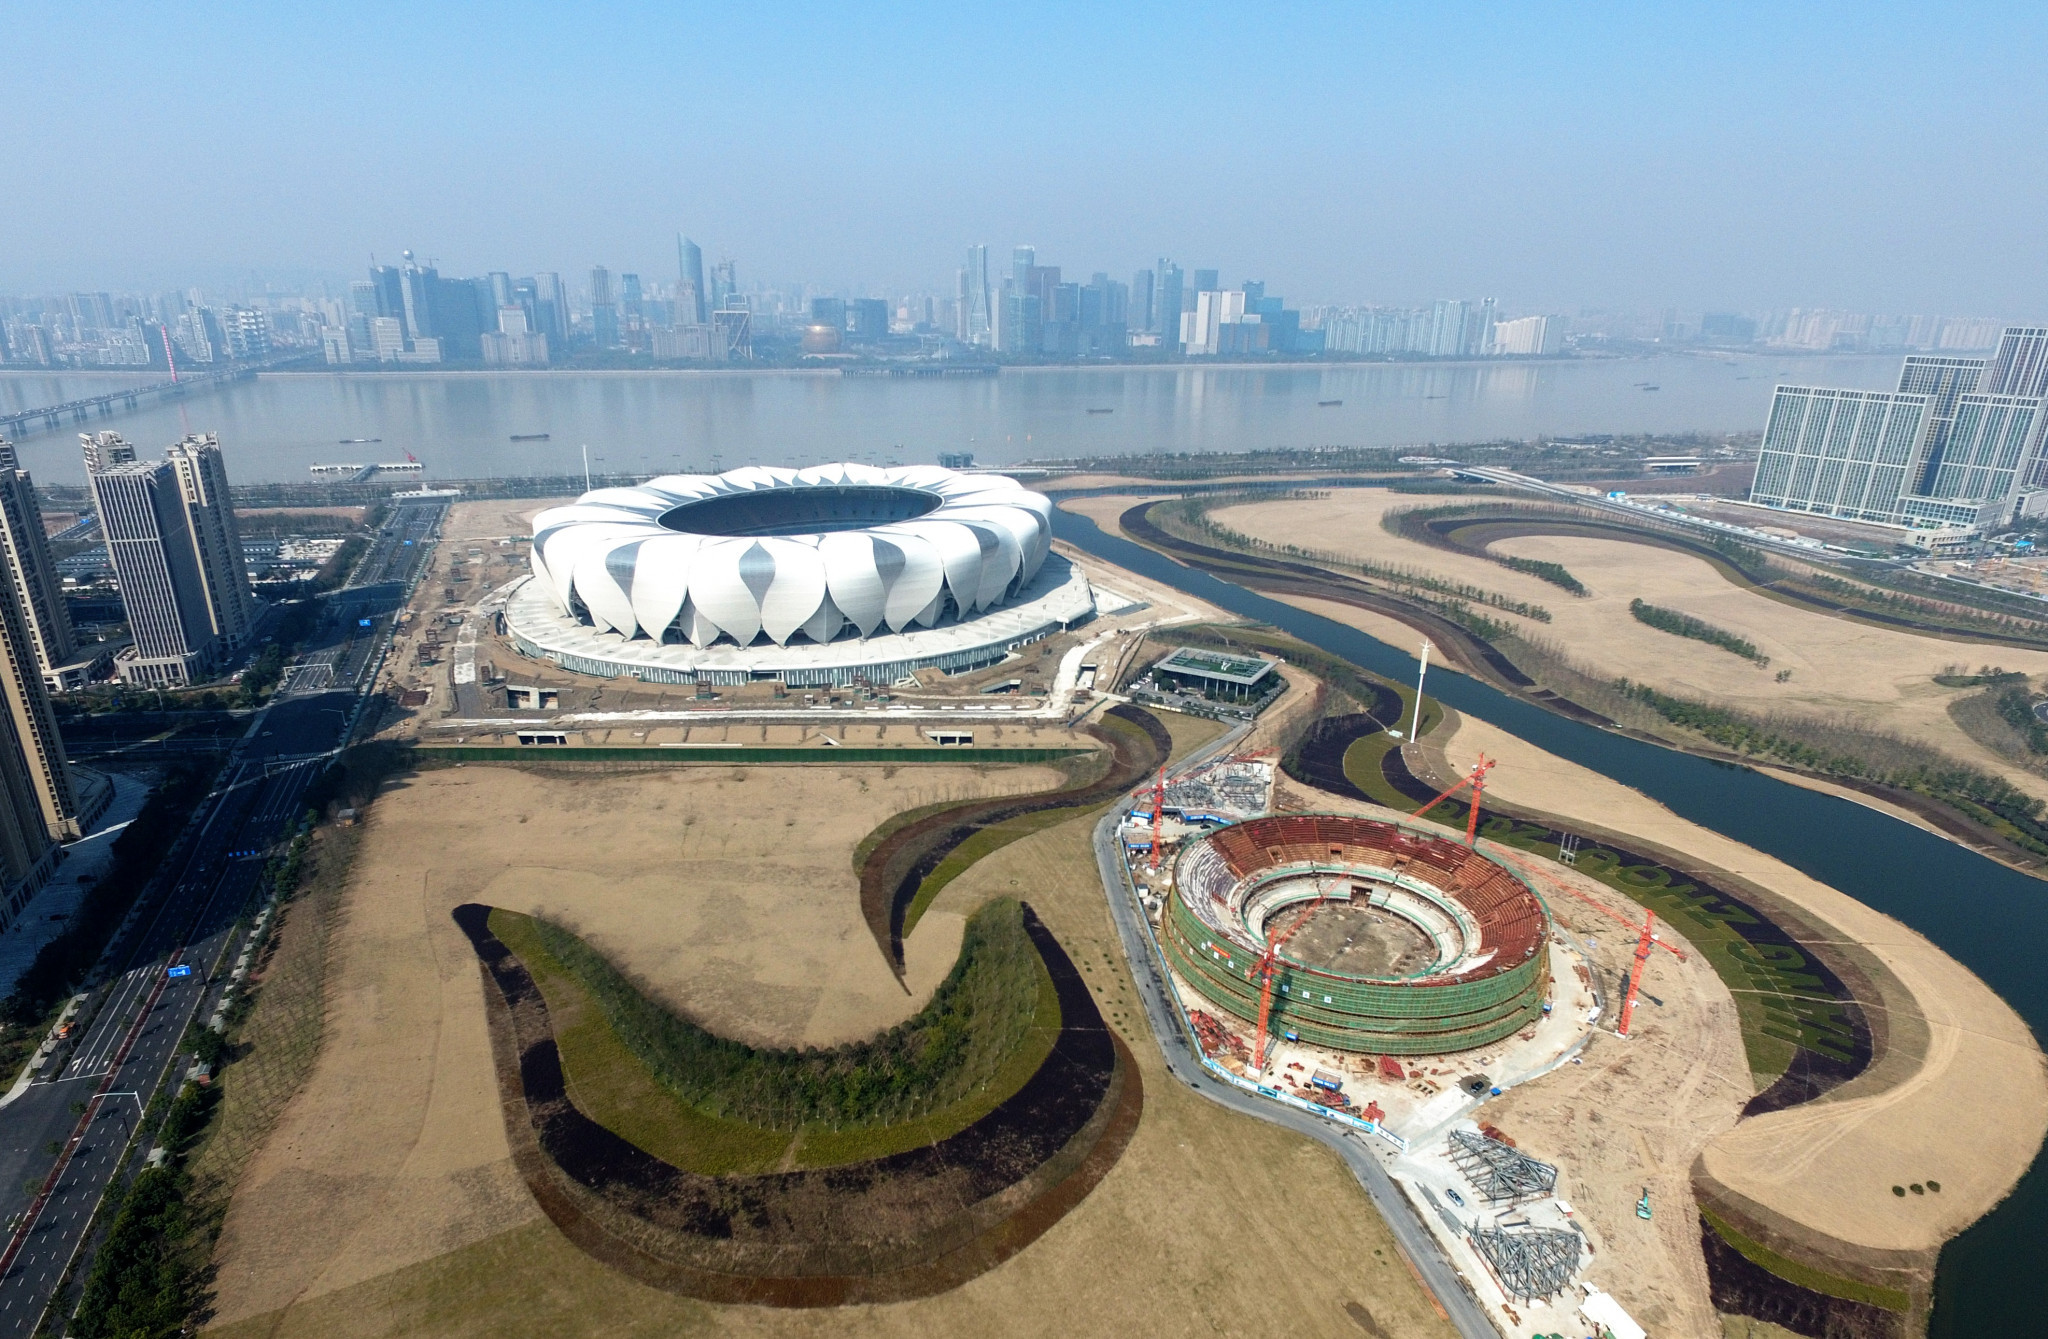 OCA Culture Committee discusses plans for 2022 Asian Games Youth Camp